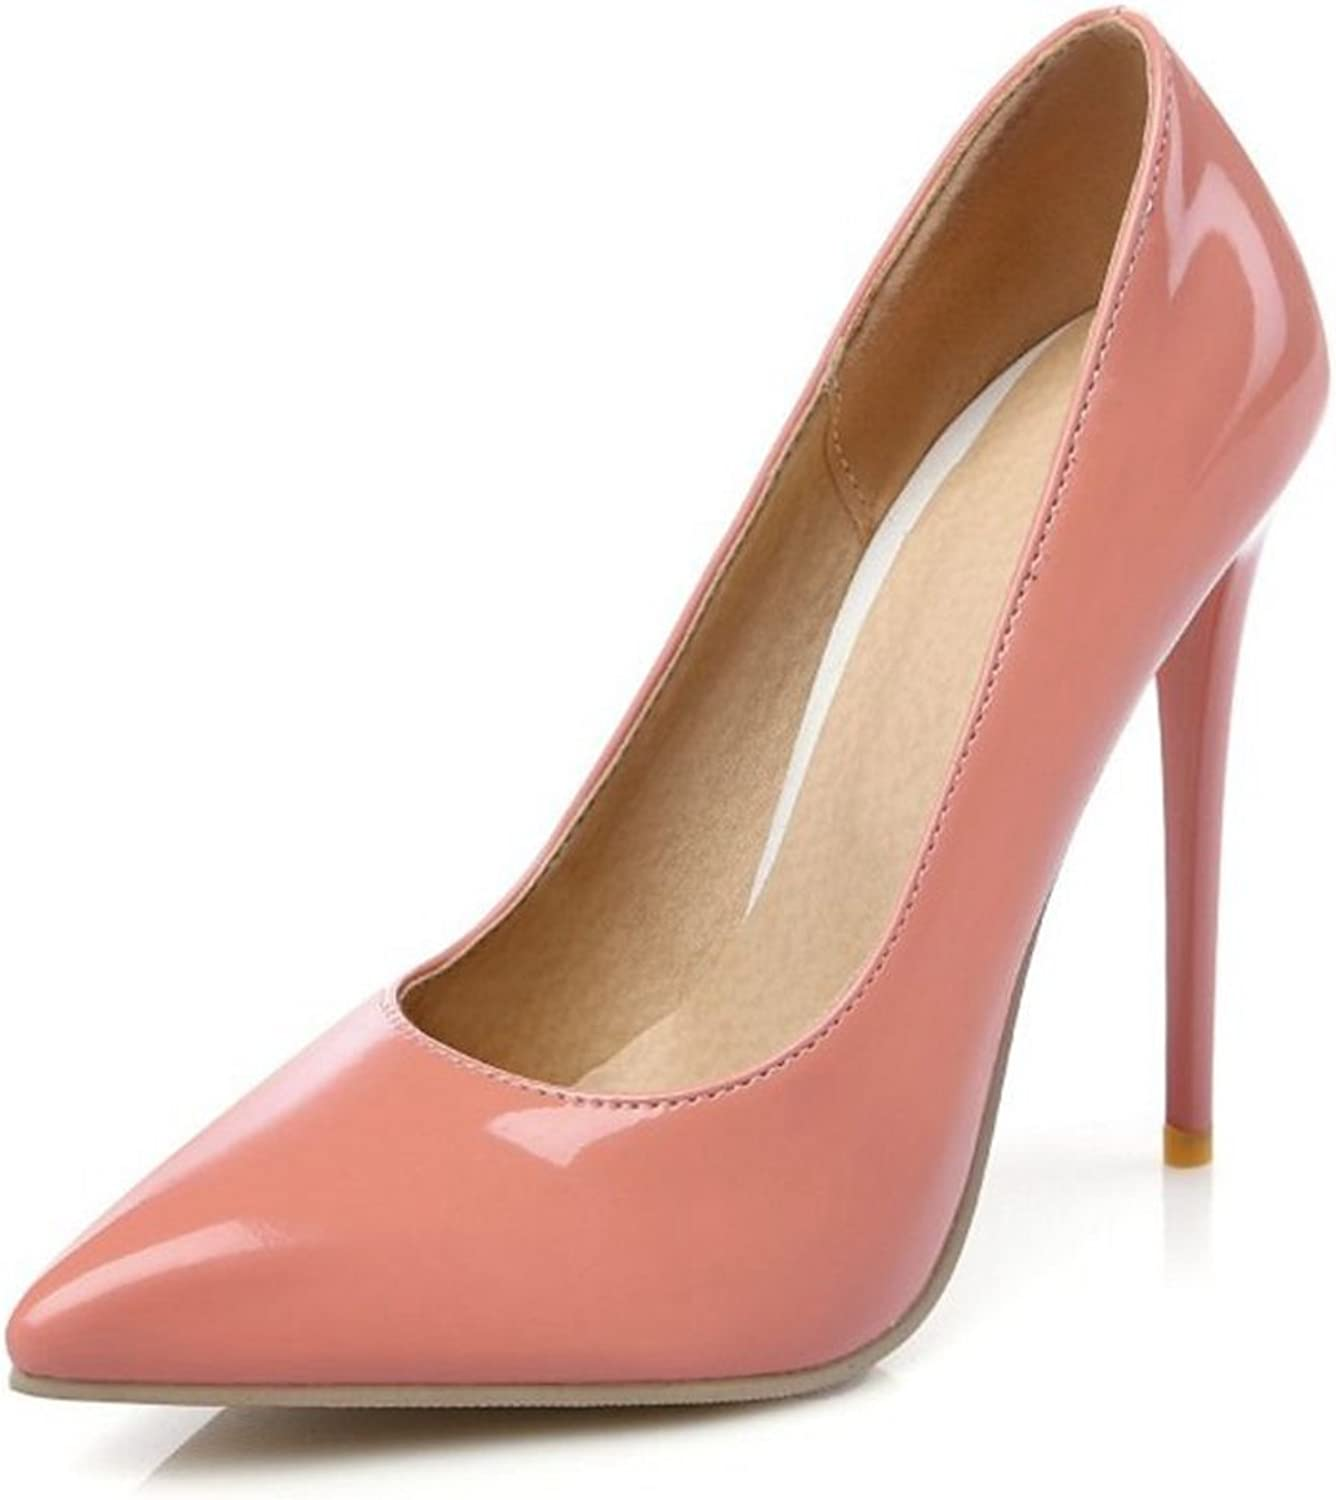 Smilice Women Dressy Pumps High Heel Stiletto Pointed Toe shoes Occupational Style 6 colors Available